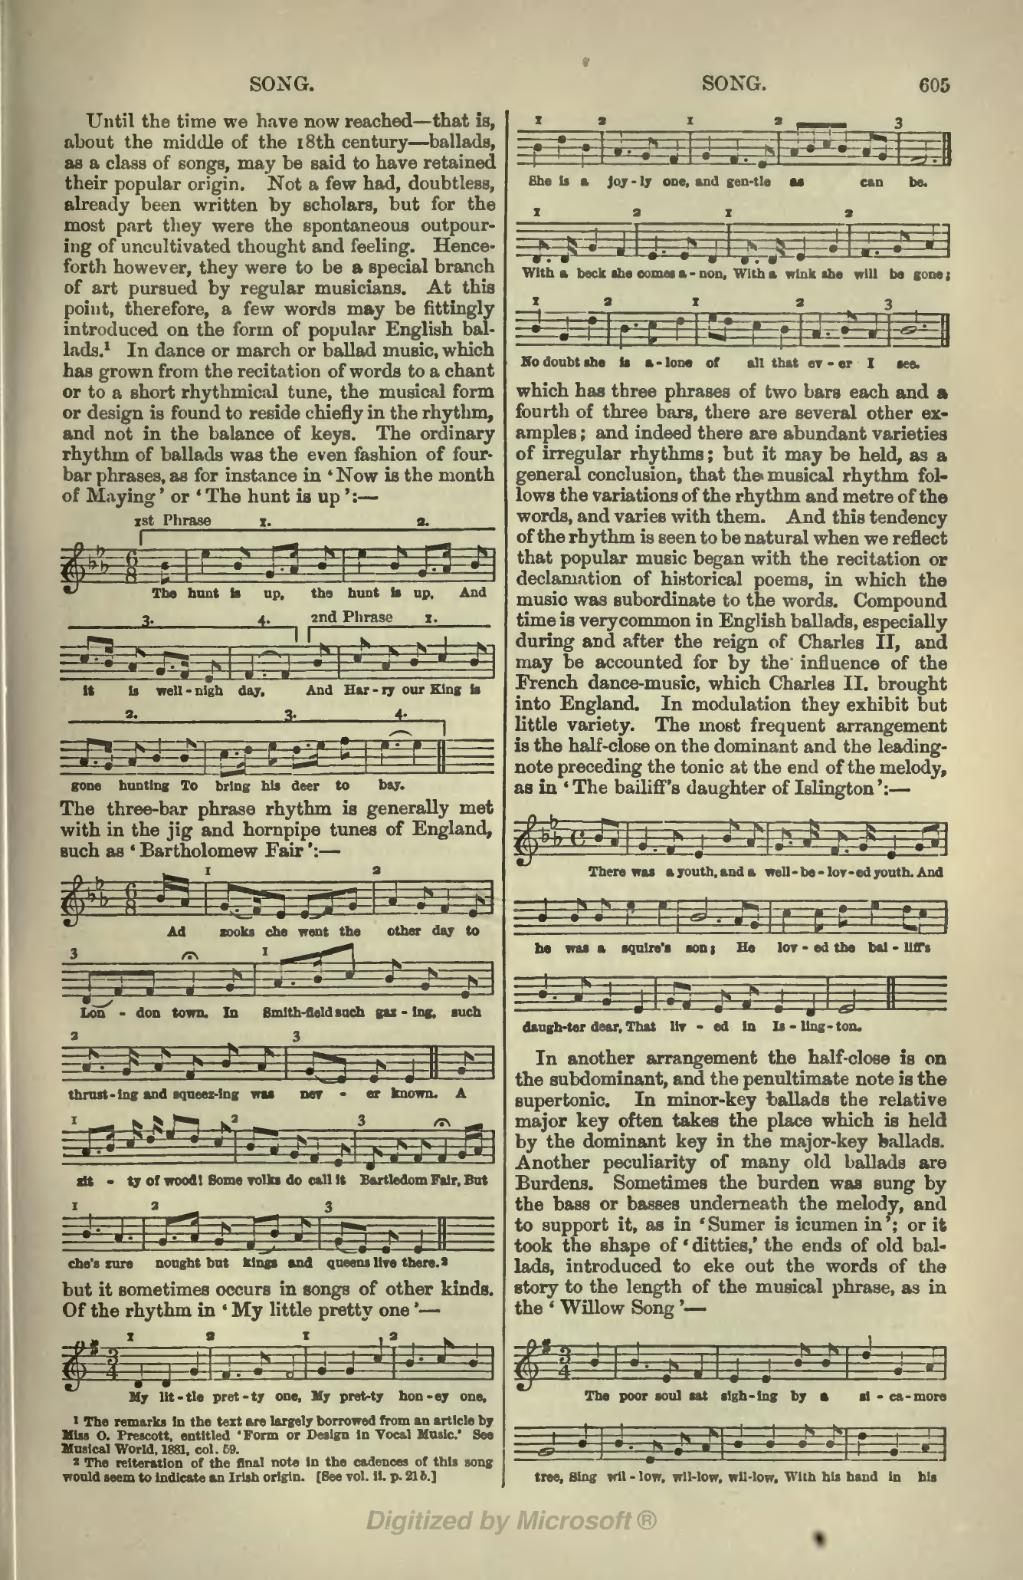 Lit Trois Place Bel Page A Dictionary Of Music and Musicians Vol 3vu 617 Wikisource